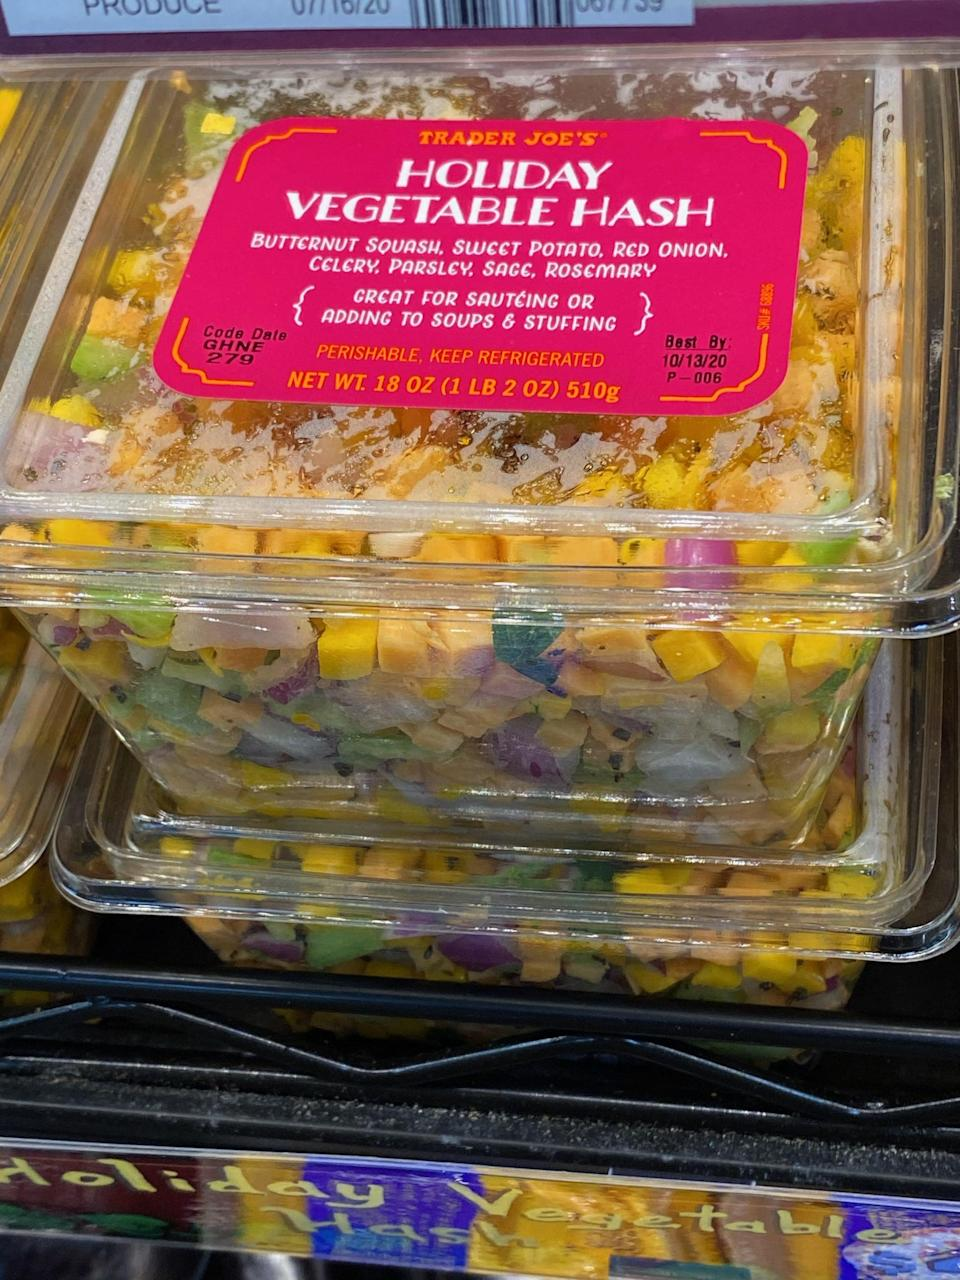 """<p>Look for this holiday vegetable hash in the fridge section, and use it to make <a href=""""https://www.popsugar.com/fitness/Healthy-Recipe-Cranberry-Pear-Wild-Rice-Stuffing-2515711"""" class=""""link rapid-noclick-resp"""" rel=""""nofollow noopener"""" target=""""_blank"""" data-ylk=""""slk:vegan cranberry-pear wild rice stuffing"""">vegan cranberry-pear wild rice stuffing</a>, a veggie soup, or a <a href=""""https://www.popsugar.com/fitness/photo-gallery/40532517/image/40532528/Vegan-Lentil-Shepherd-Pie"""" class=""""link rapid-noclick-resp"""" rel=""""nofollow noopener"""" target=""""_blank"""" data-ylk=""""slk:vegan shepherd's pie"""">vegan shepherd's pie</a>.</p>"""